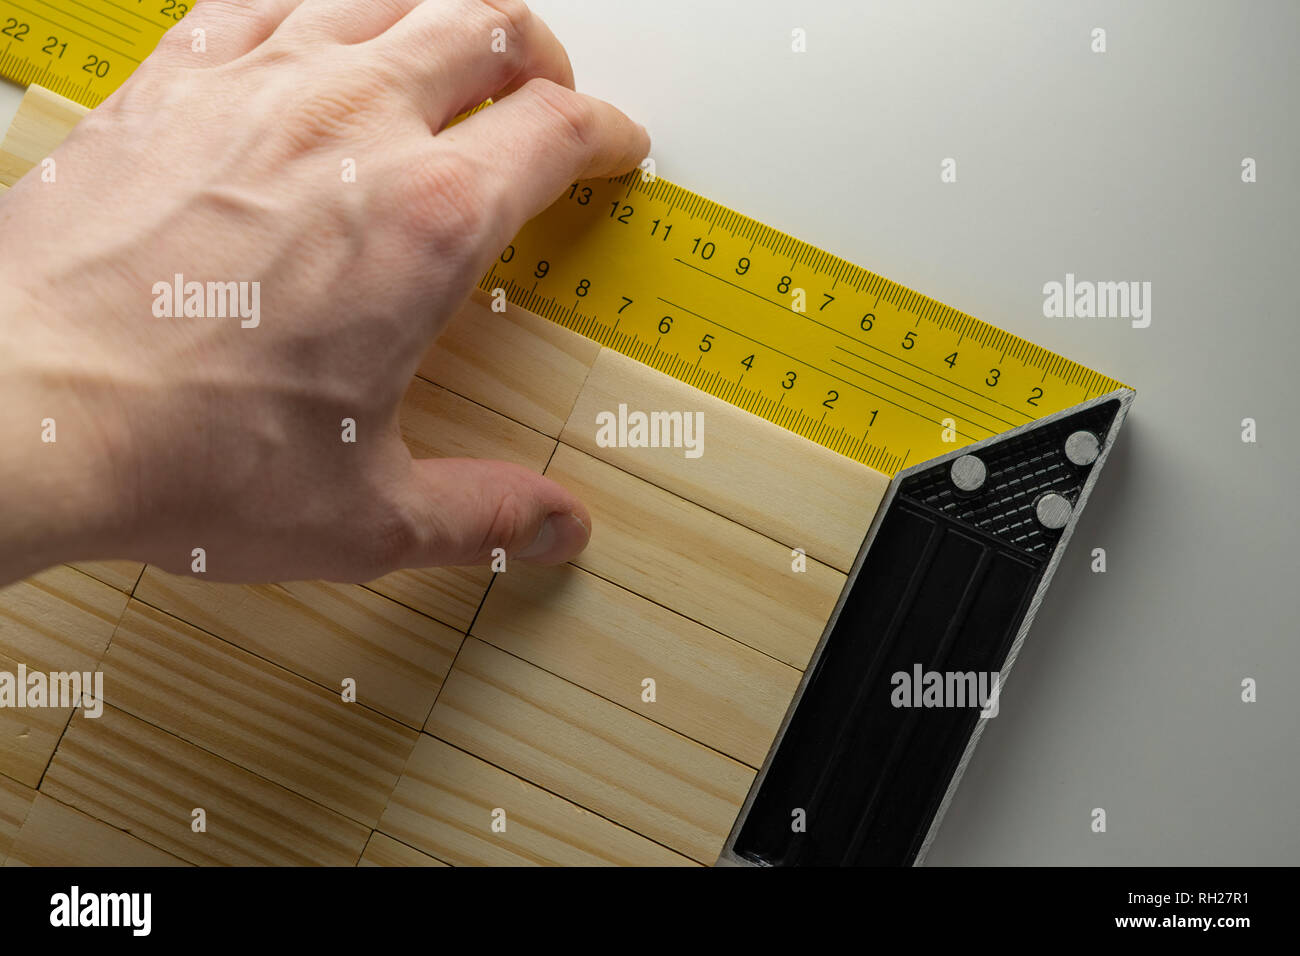 Checking the corner of the table, hand with corner ruler and wooden blocks table - Stock Image